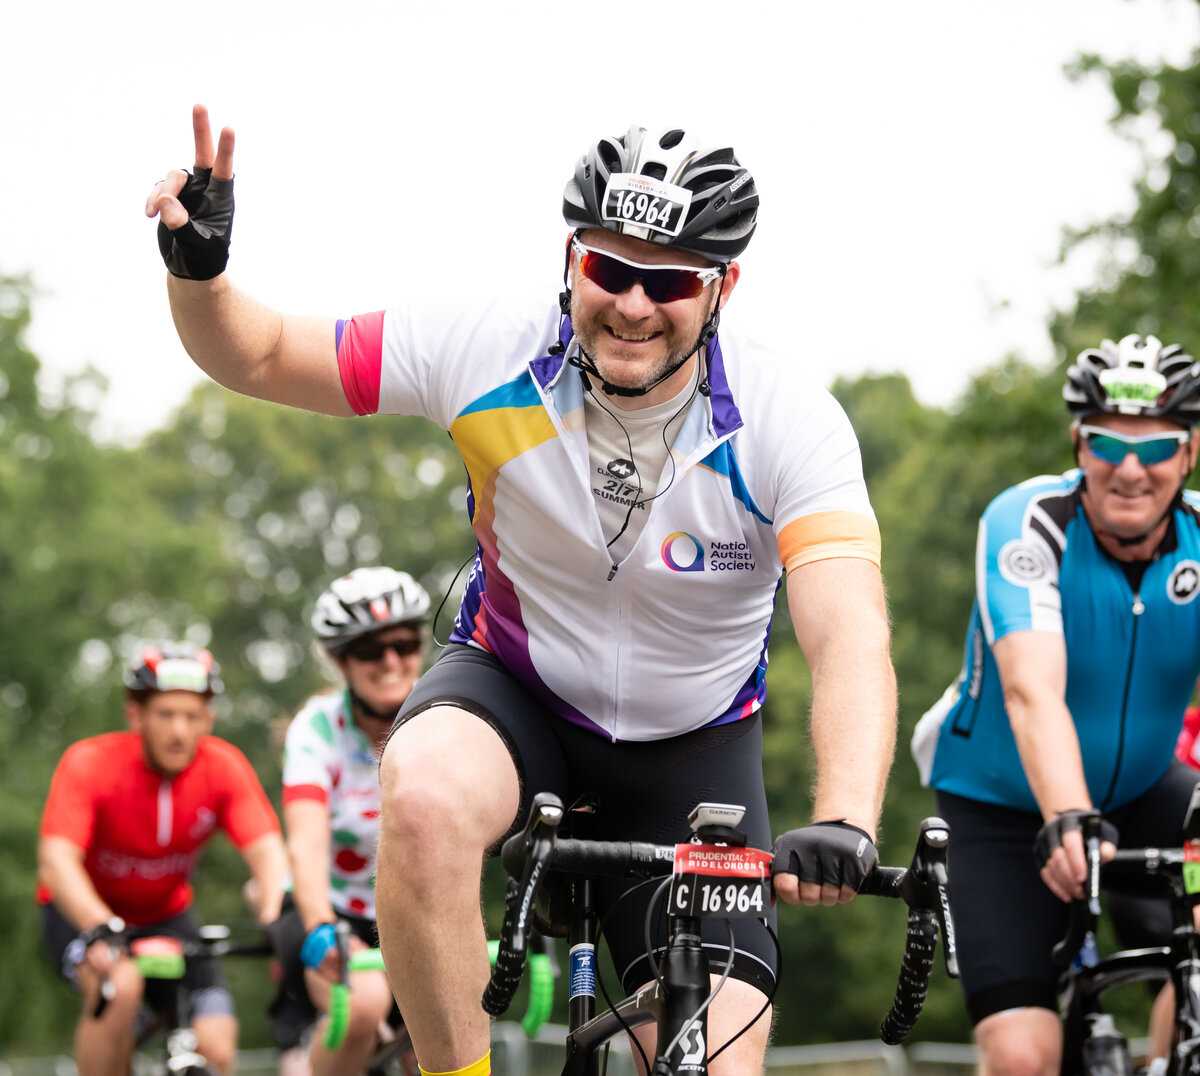 Cyclists take part in Prudential RideLondon 100 to raise money for The National Autistic Society. // Photography by www.sportsphotographer.co.uk